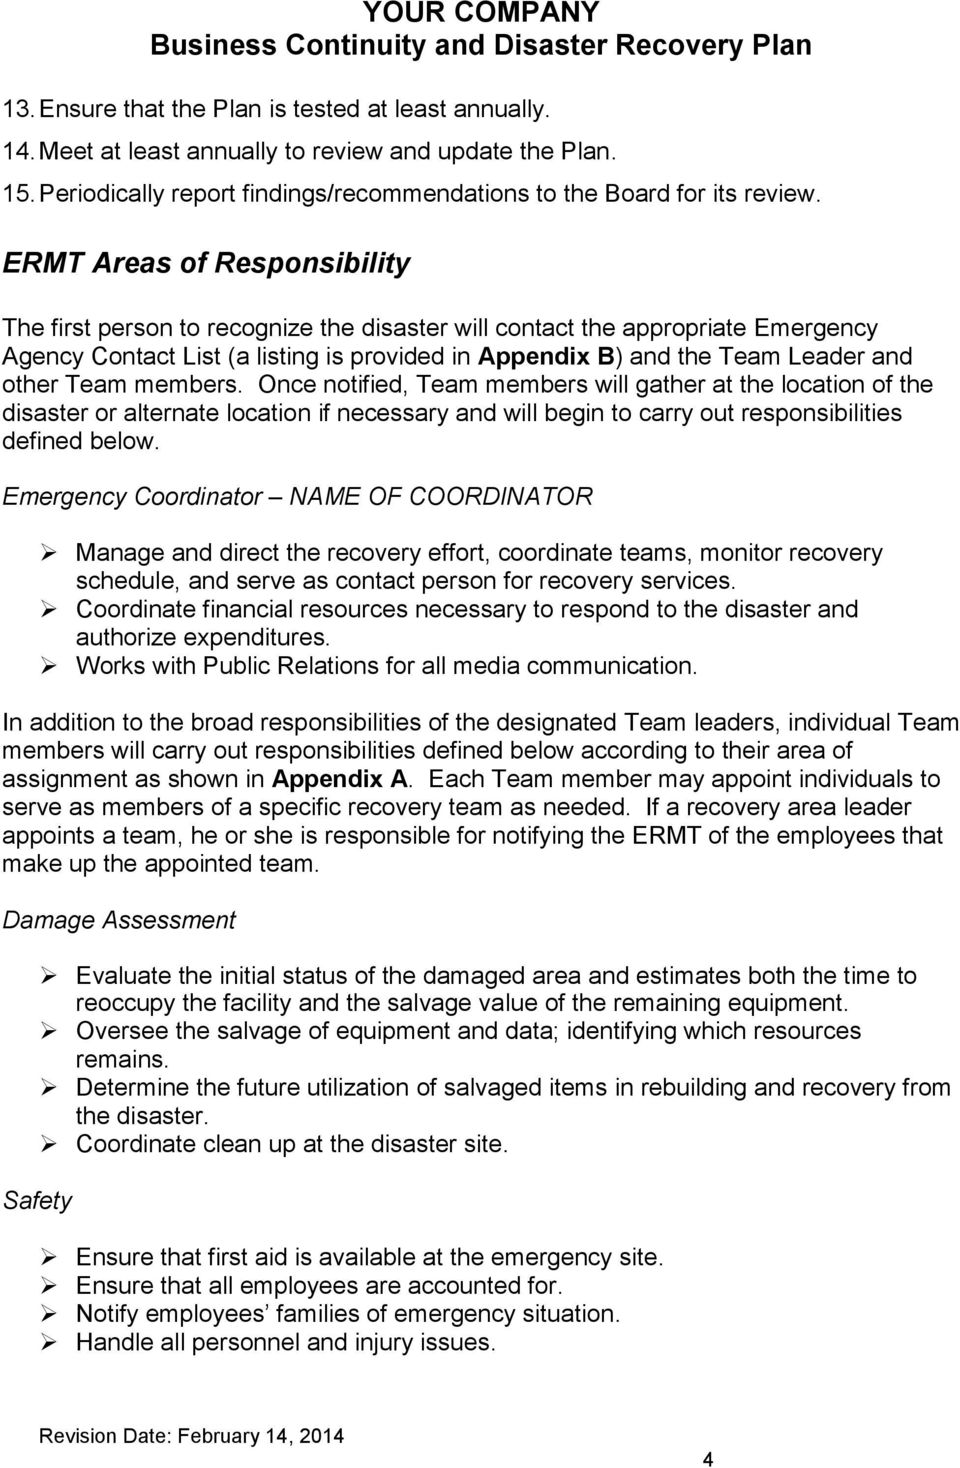 Team members. Once notified, Team members will gather at the location of the disaster or alternate location if necessary and will begin to carry out responsibilities defined below.